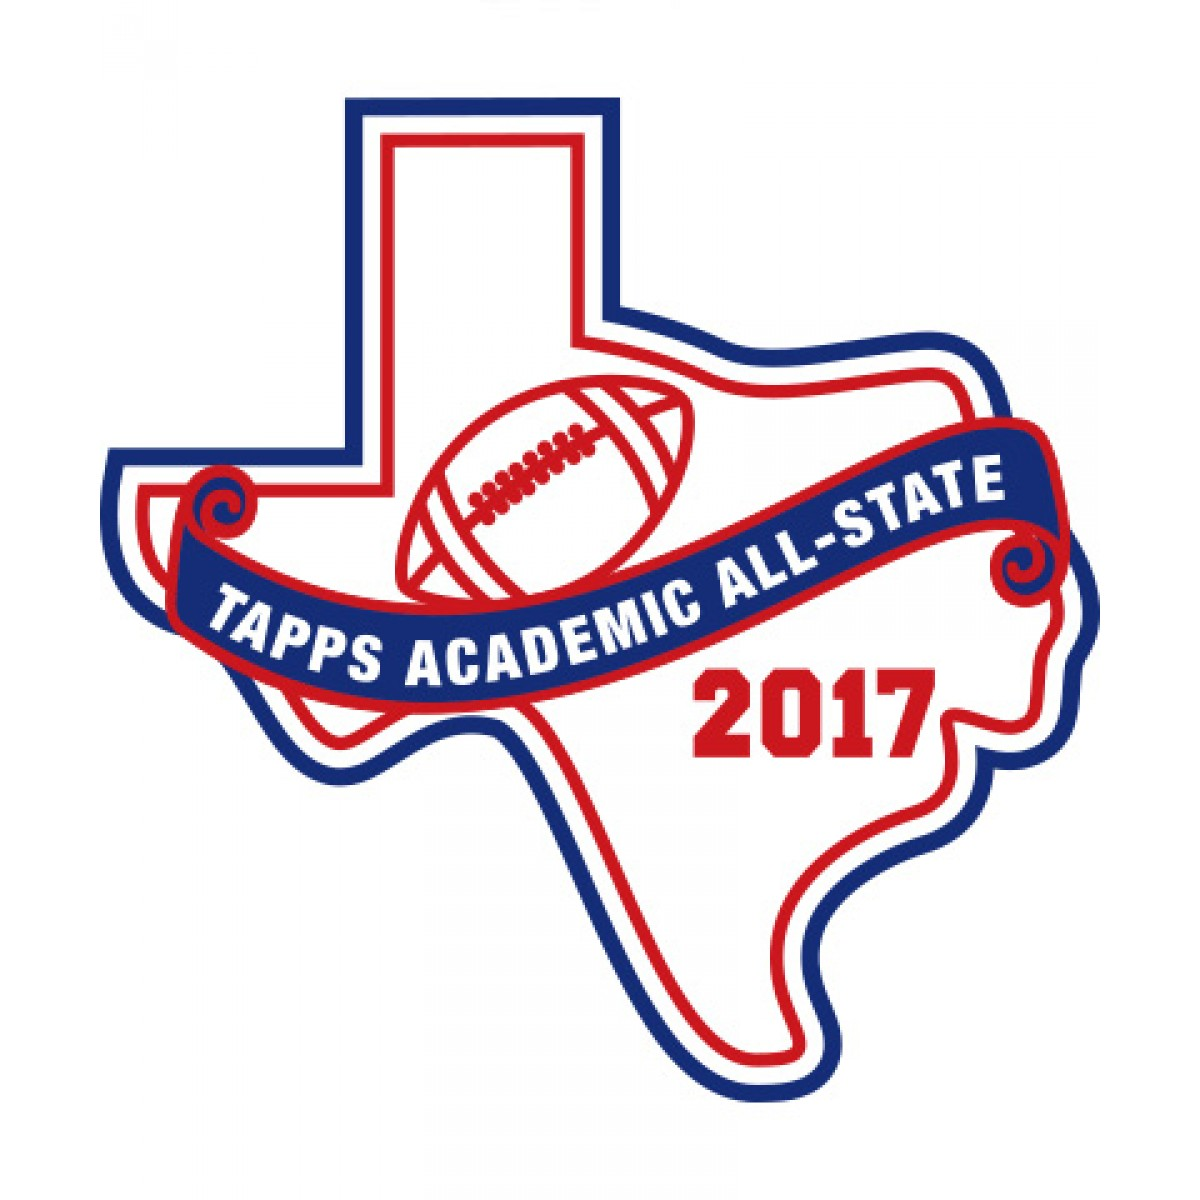 Felt 2017 TAPPS Academic All-State Football Patch